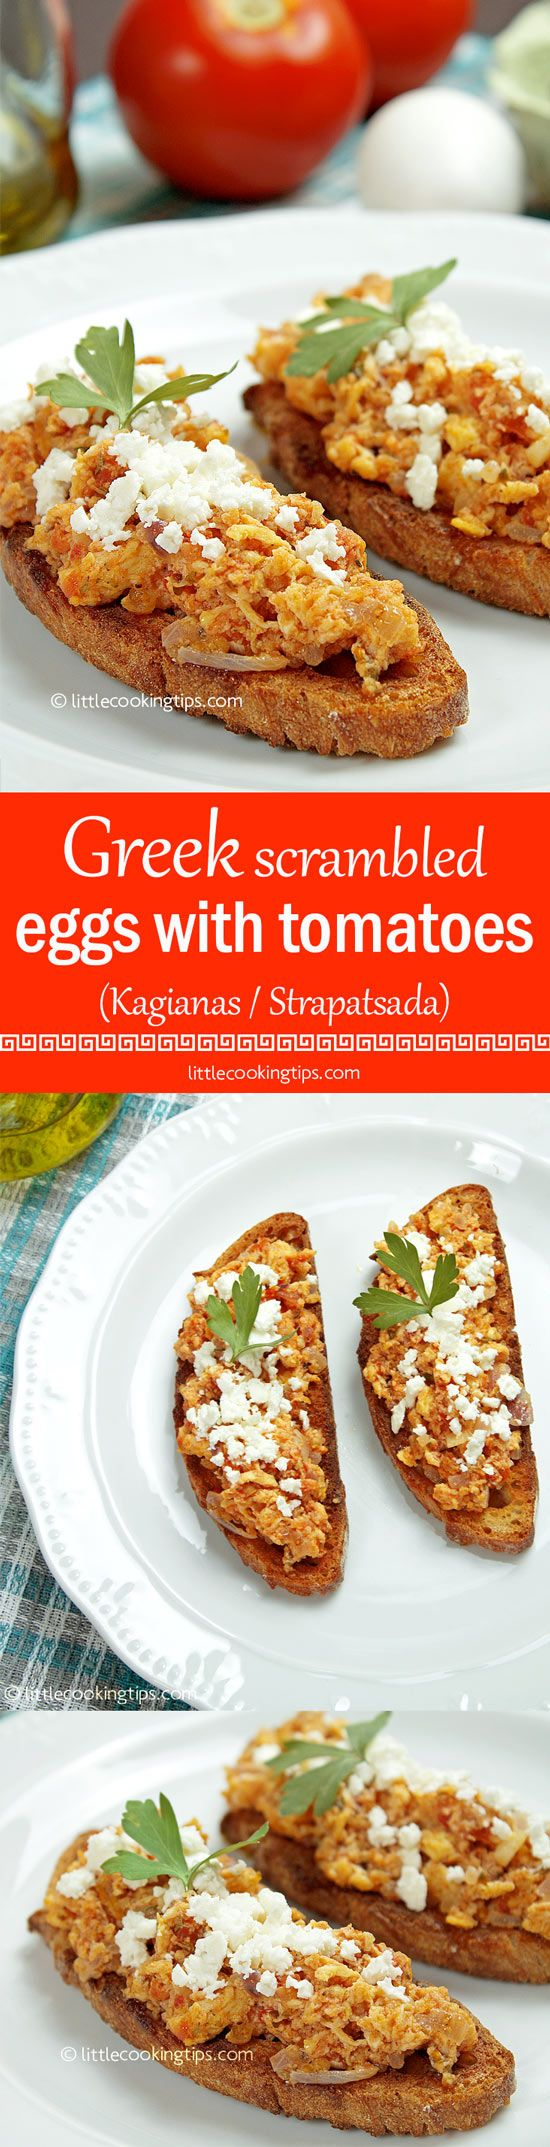 Greek scrambled eggs with tomatoes (Kagianas or Strapatsada). An easy, yummy, low cost recipe for breakfast or brunch. One of the classic dishes of the Greek cuisine. #egg #tomato #brunch #Greek #food